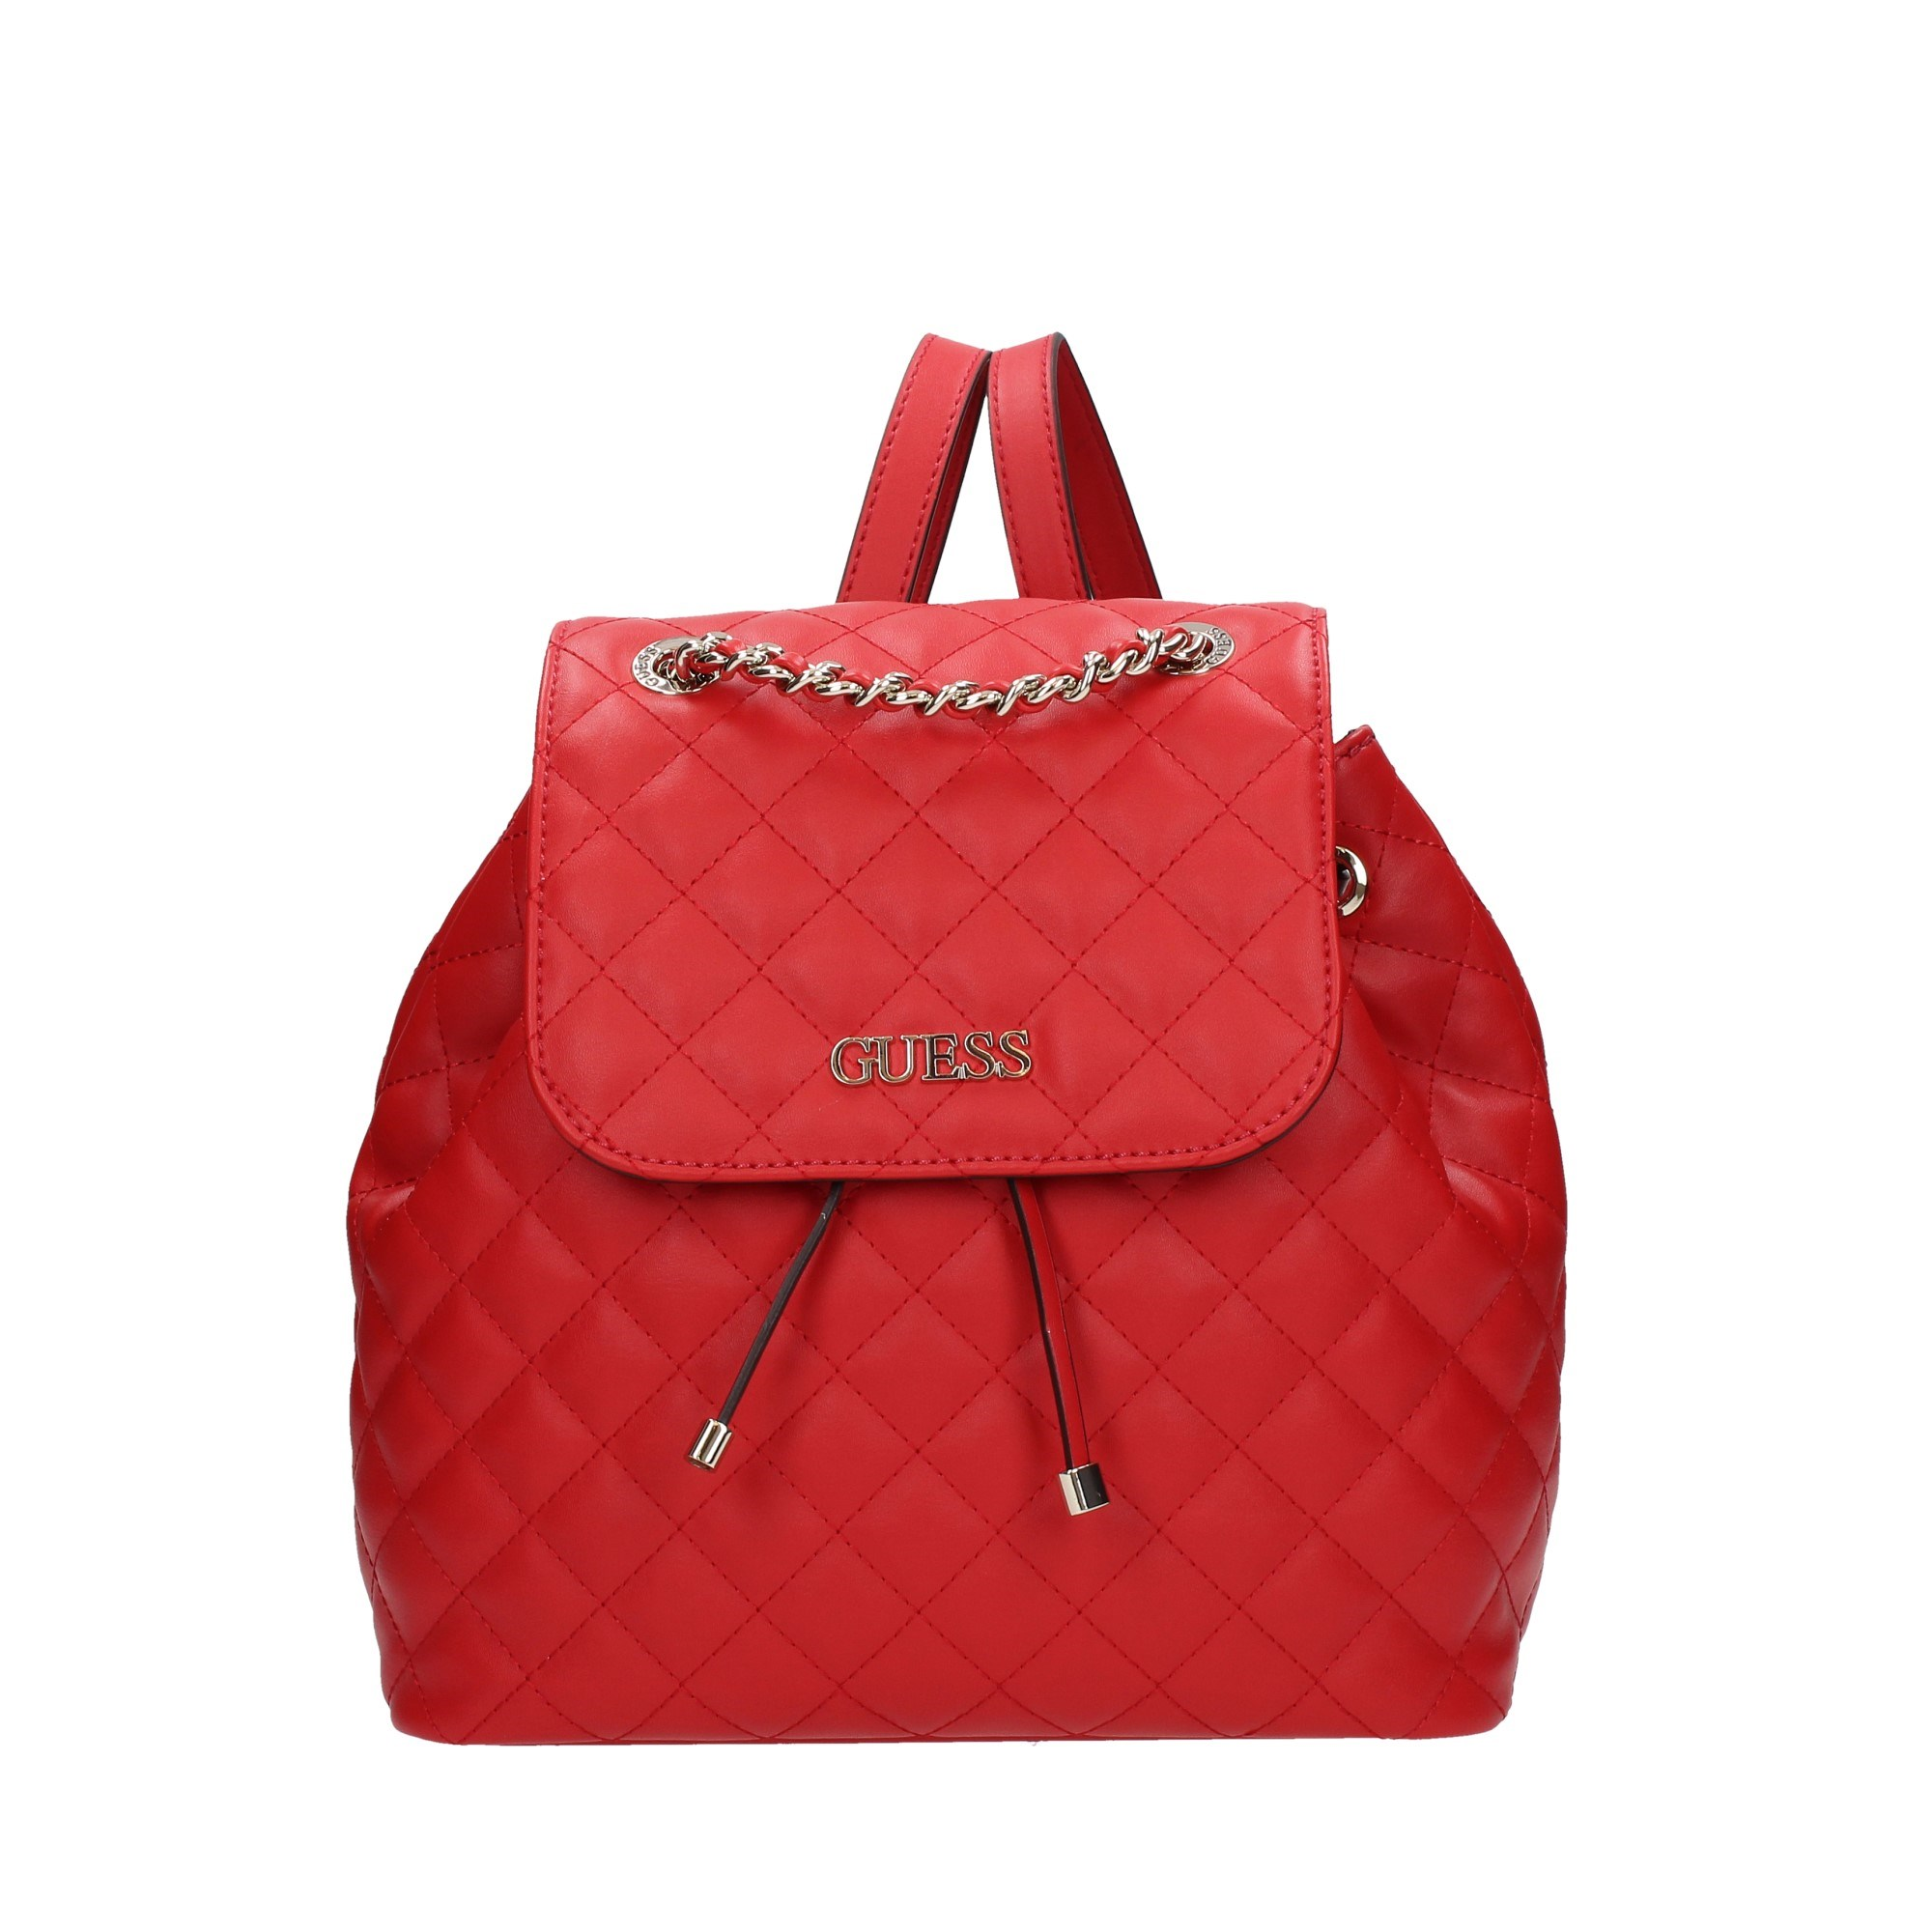 Guess Borse Accessories Women Backpack Red HWVG79/70320